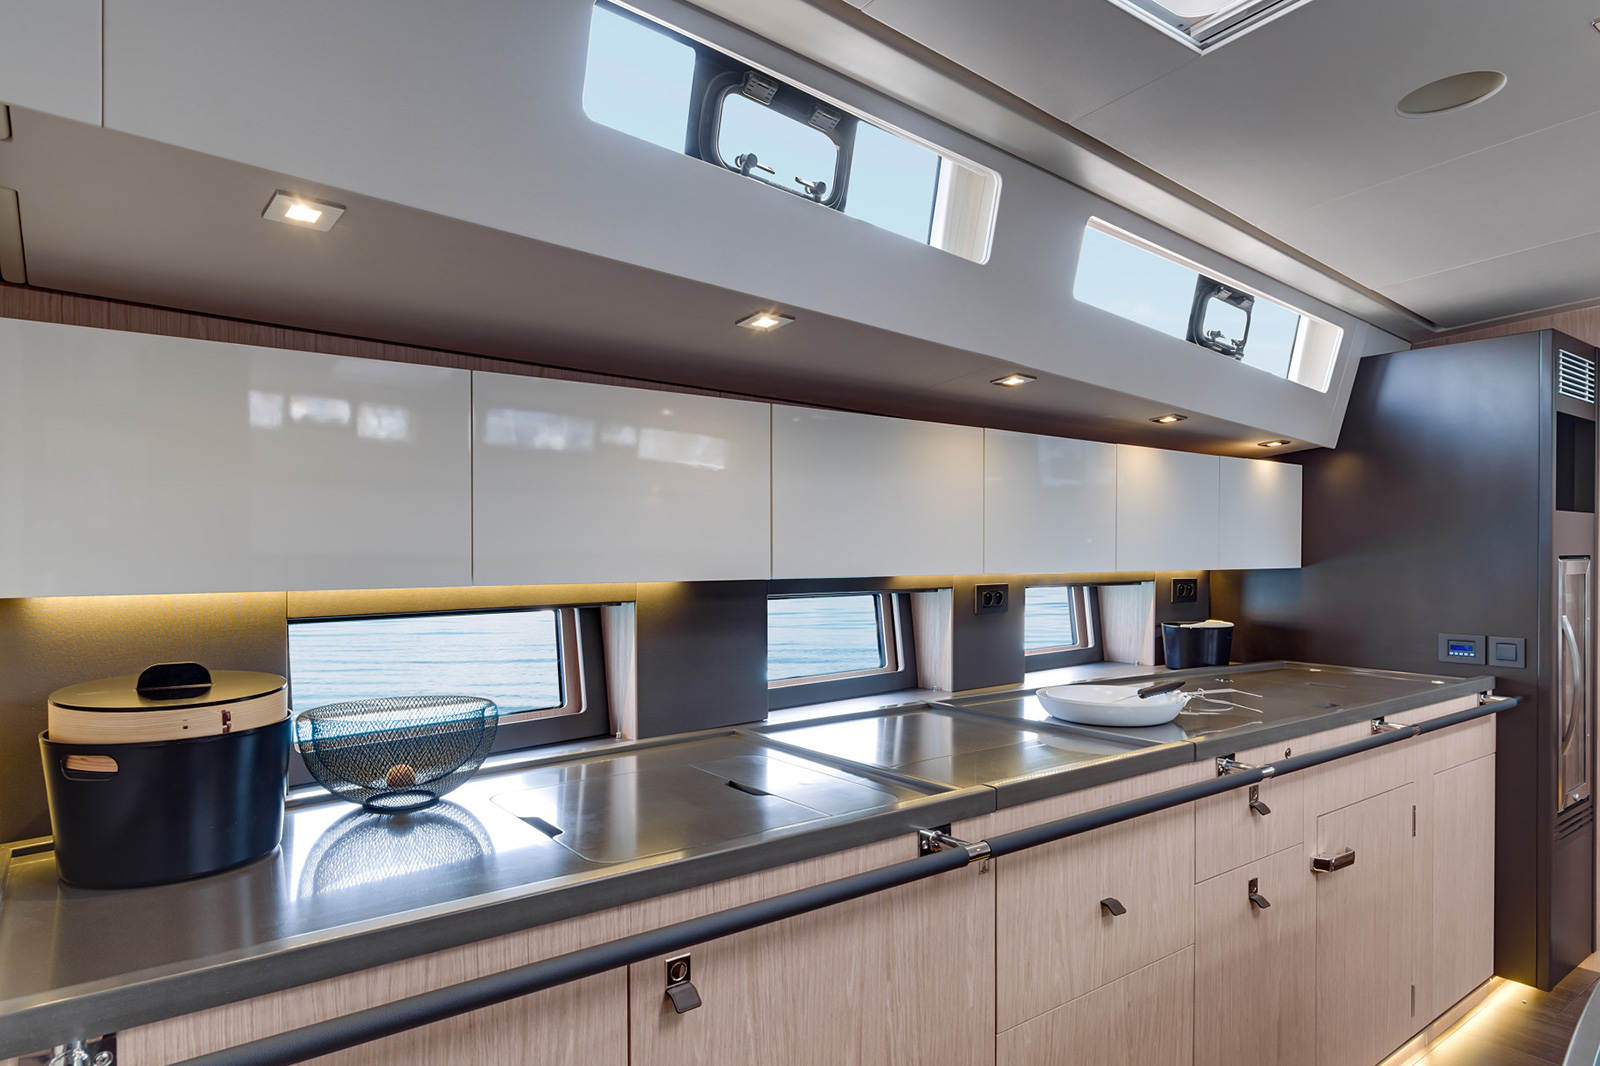 Oceanis62 Yacht Kitchen